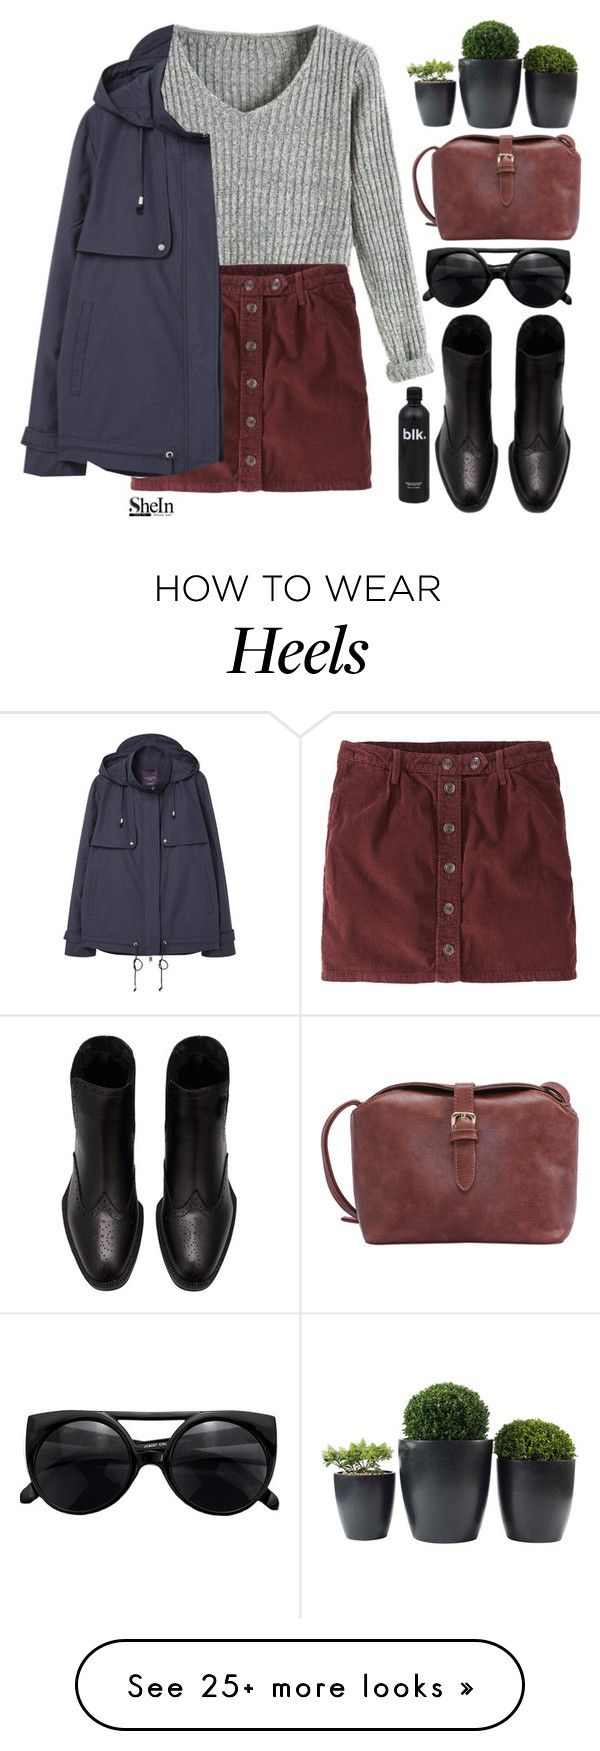 """#SheIn"" by credentovideos on Polyvore featuring Jack Wills and Violeta by Mango"